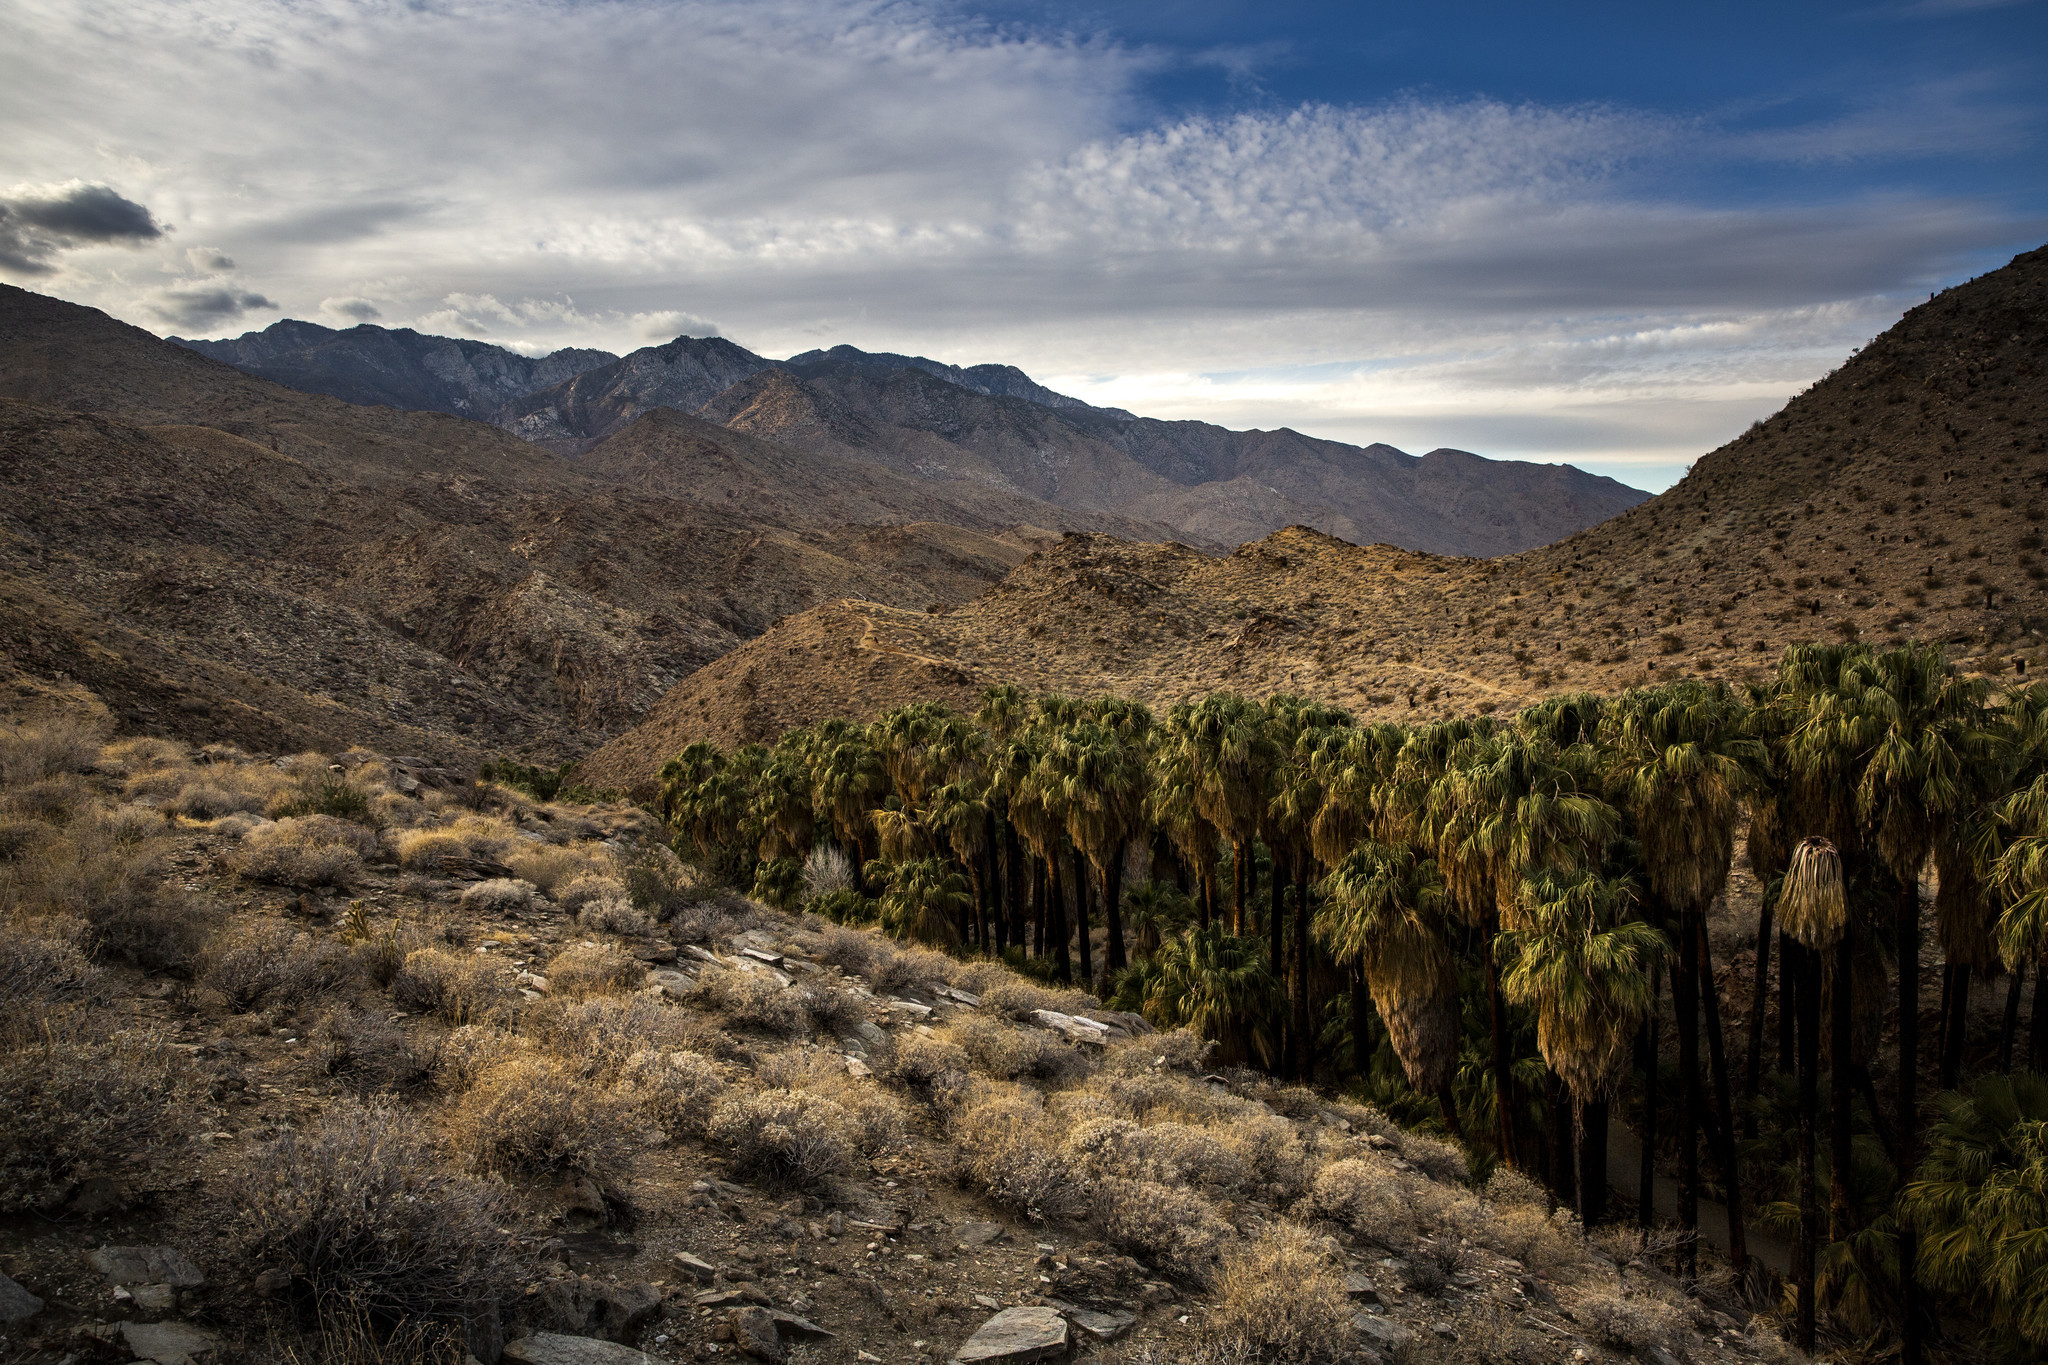 PALM SPRINGS, CALIF. - NOVEMBER 25: A view from the Palm Canyon Trail at Indian Canyons on Sunday, N